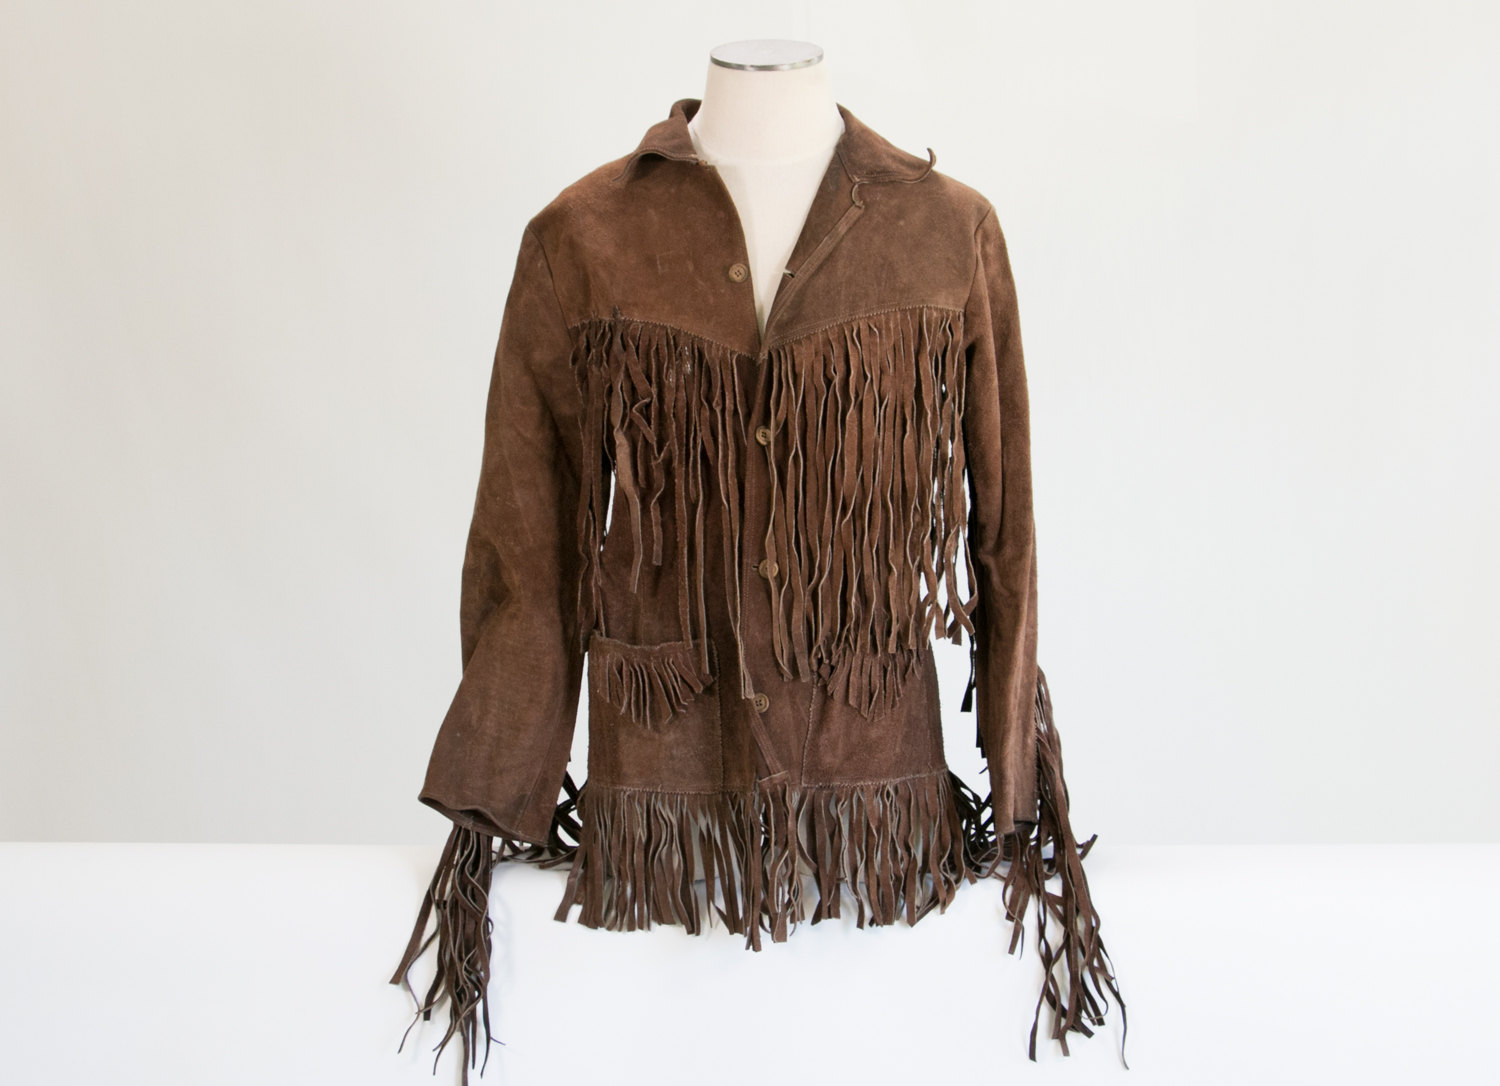 Rare Vintage Brown Suede Leather Fringe Frontier Jacket / Native American // Men's L - XL // Beautiful Thick Leather! Motorcycle, Rock